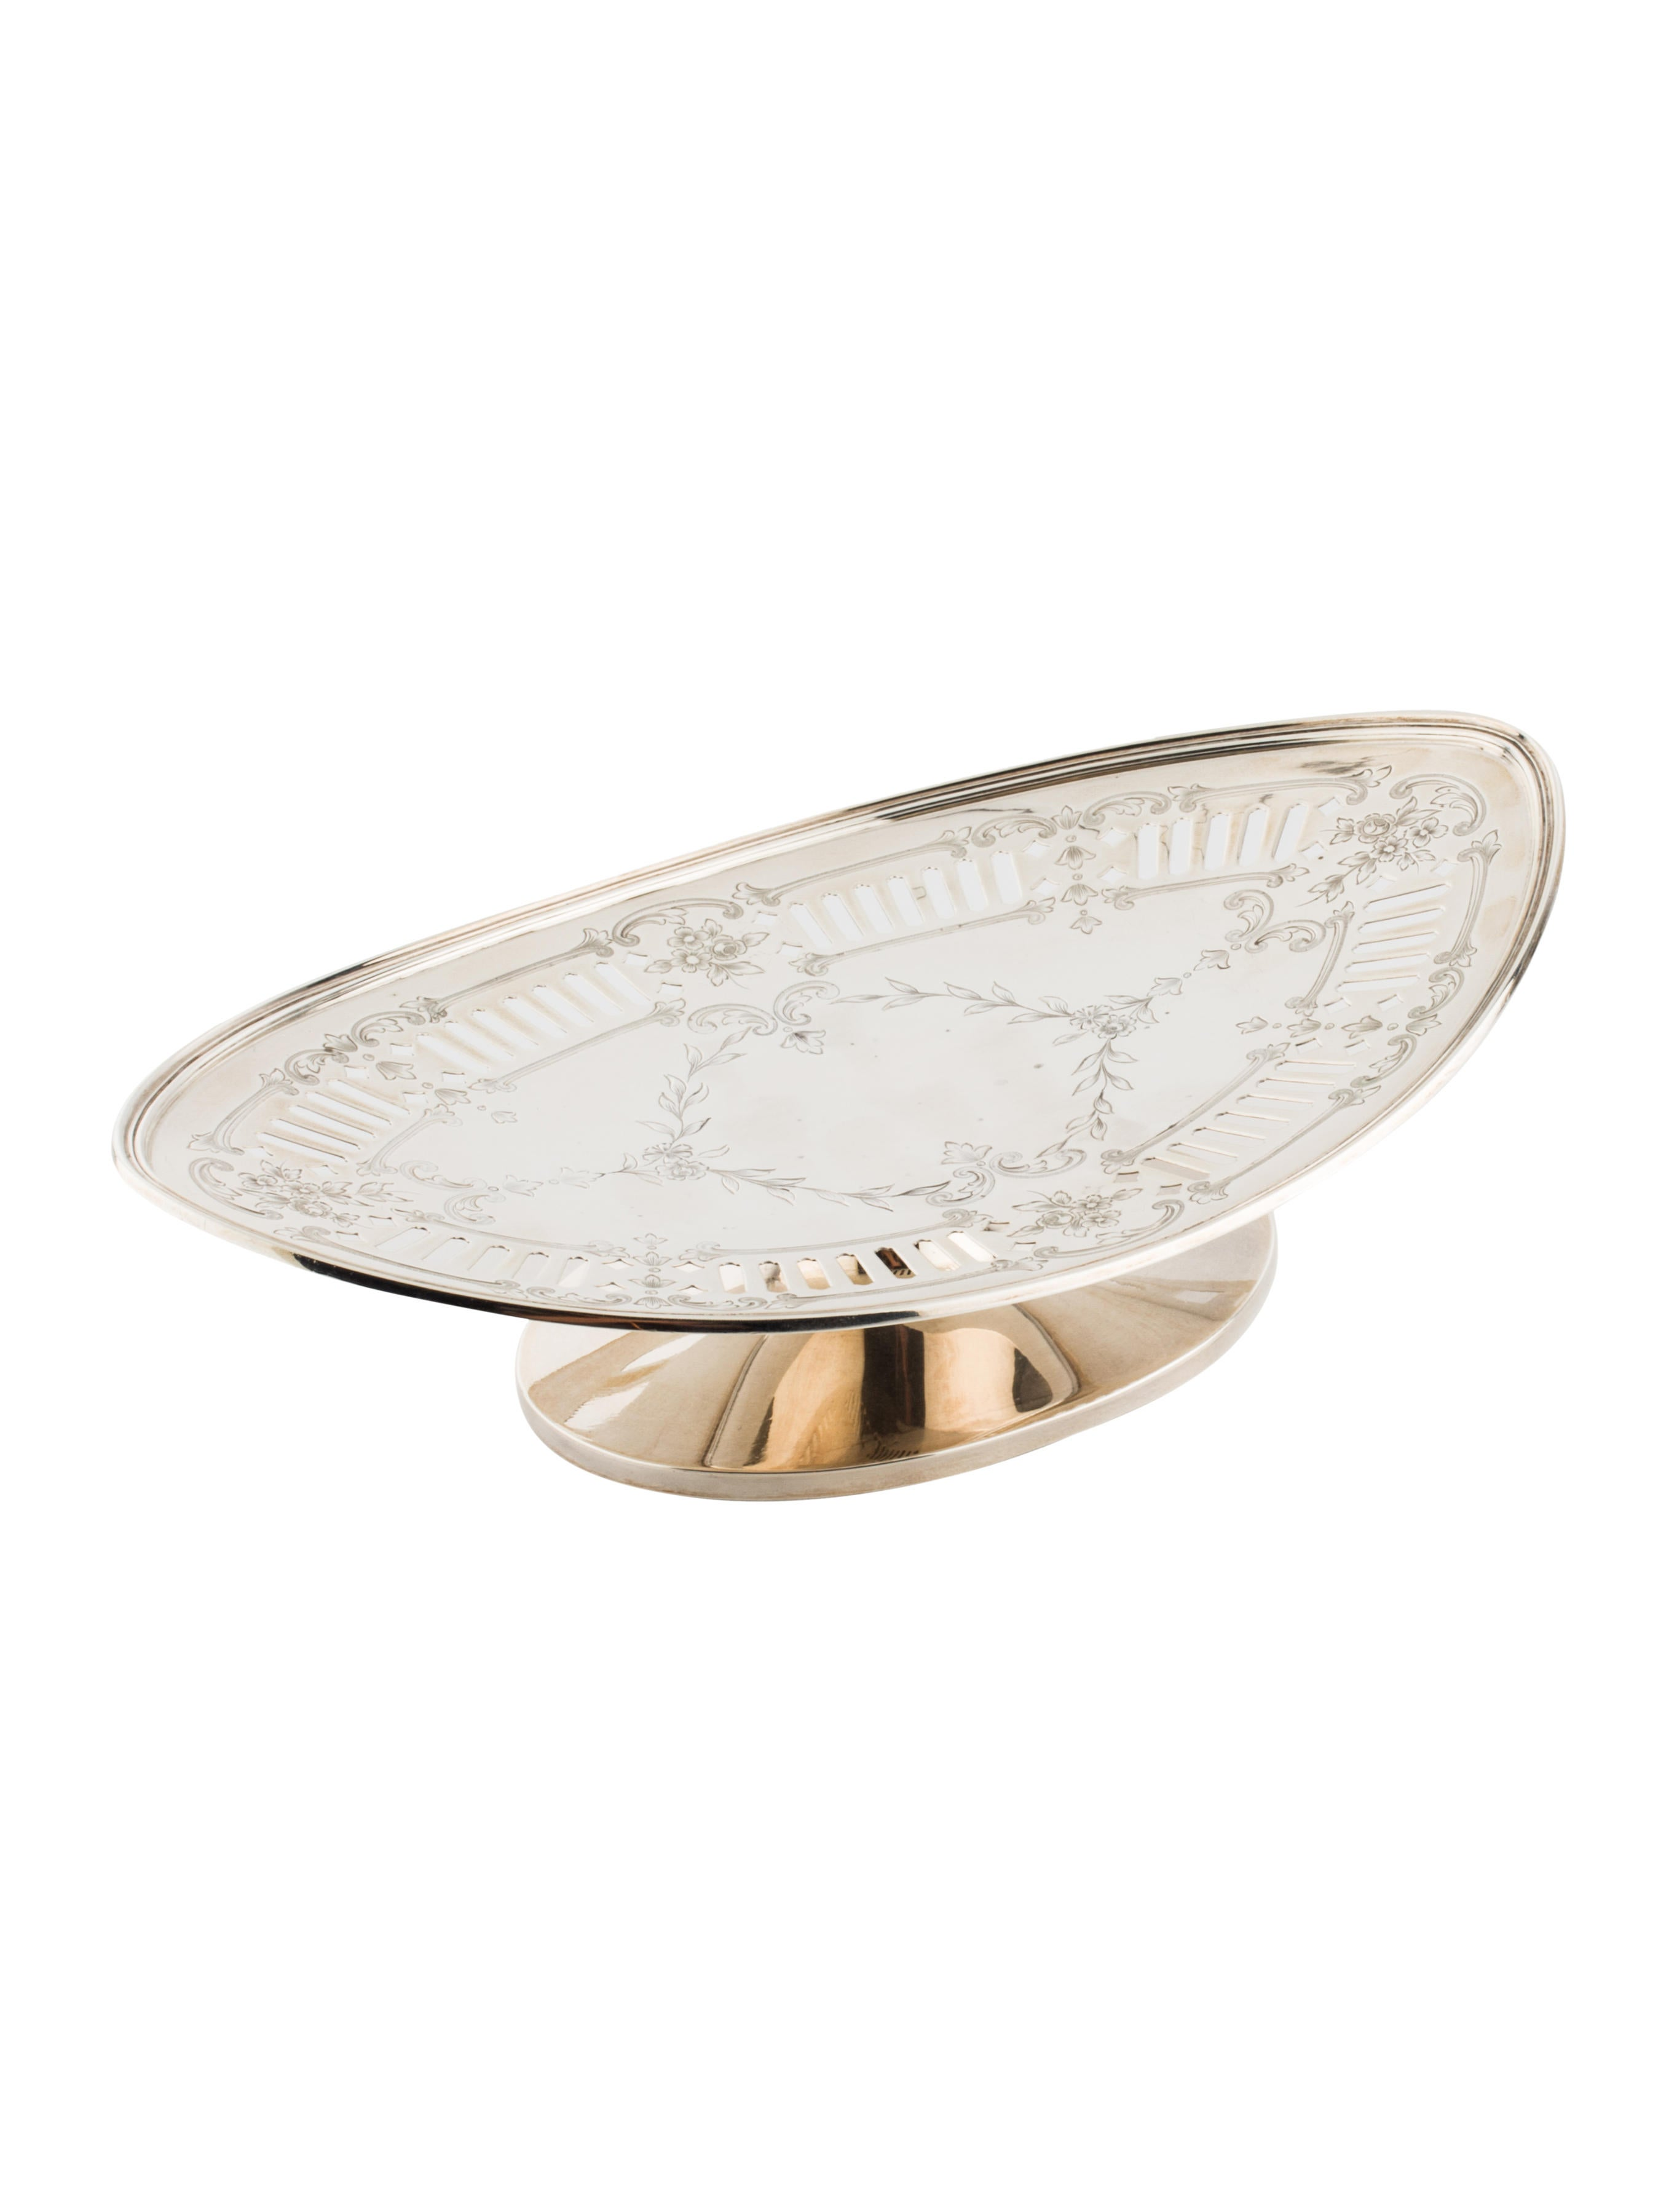 Shreve co sterling pedestal tray decor and for Artistic accents genuine silver decoration